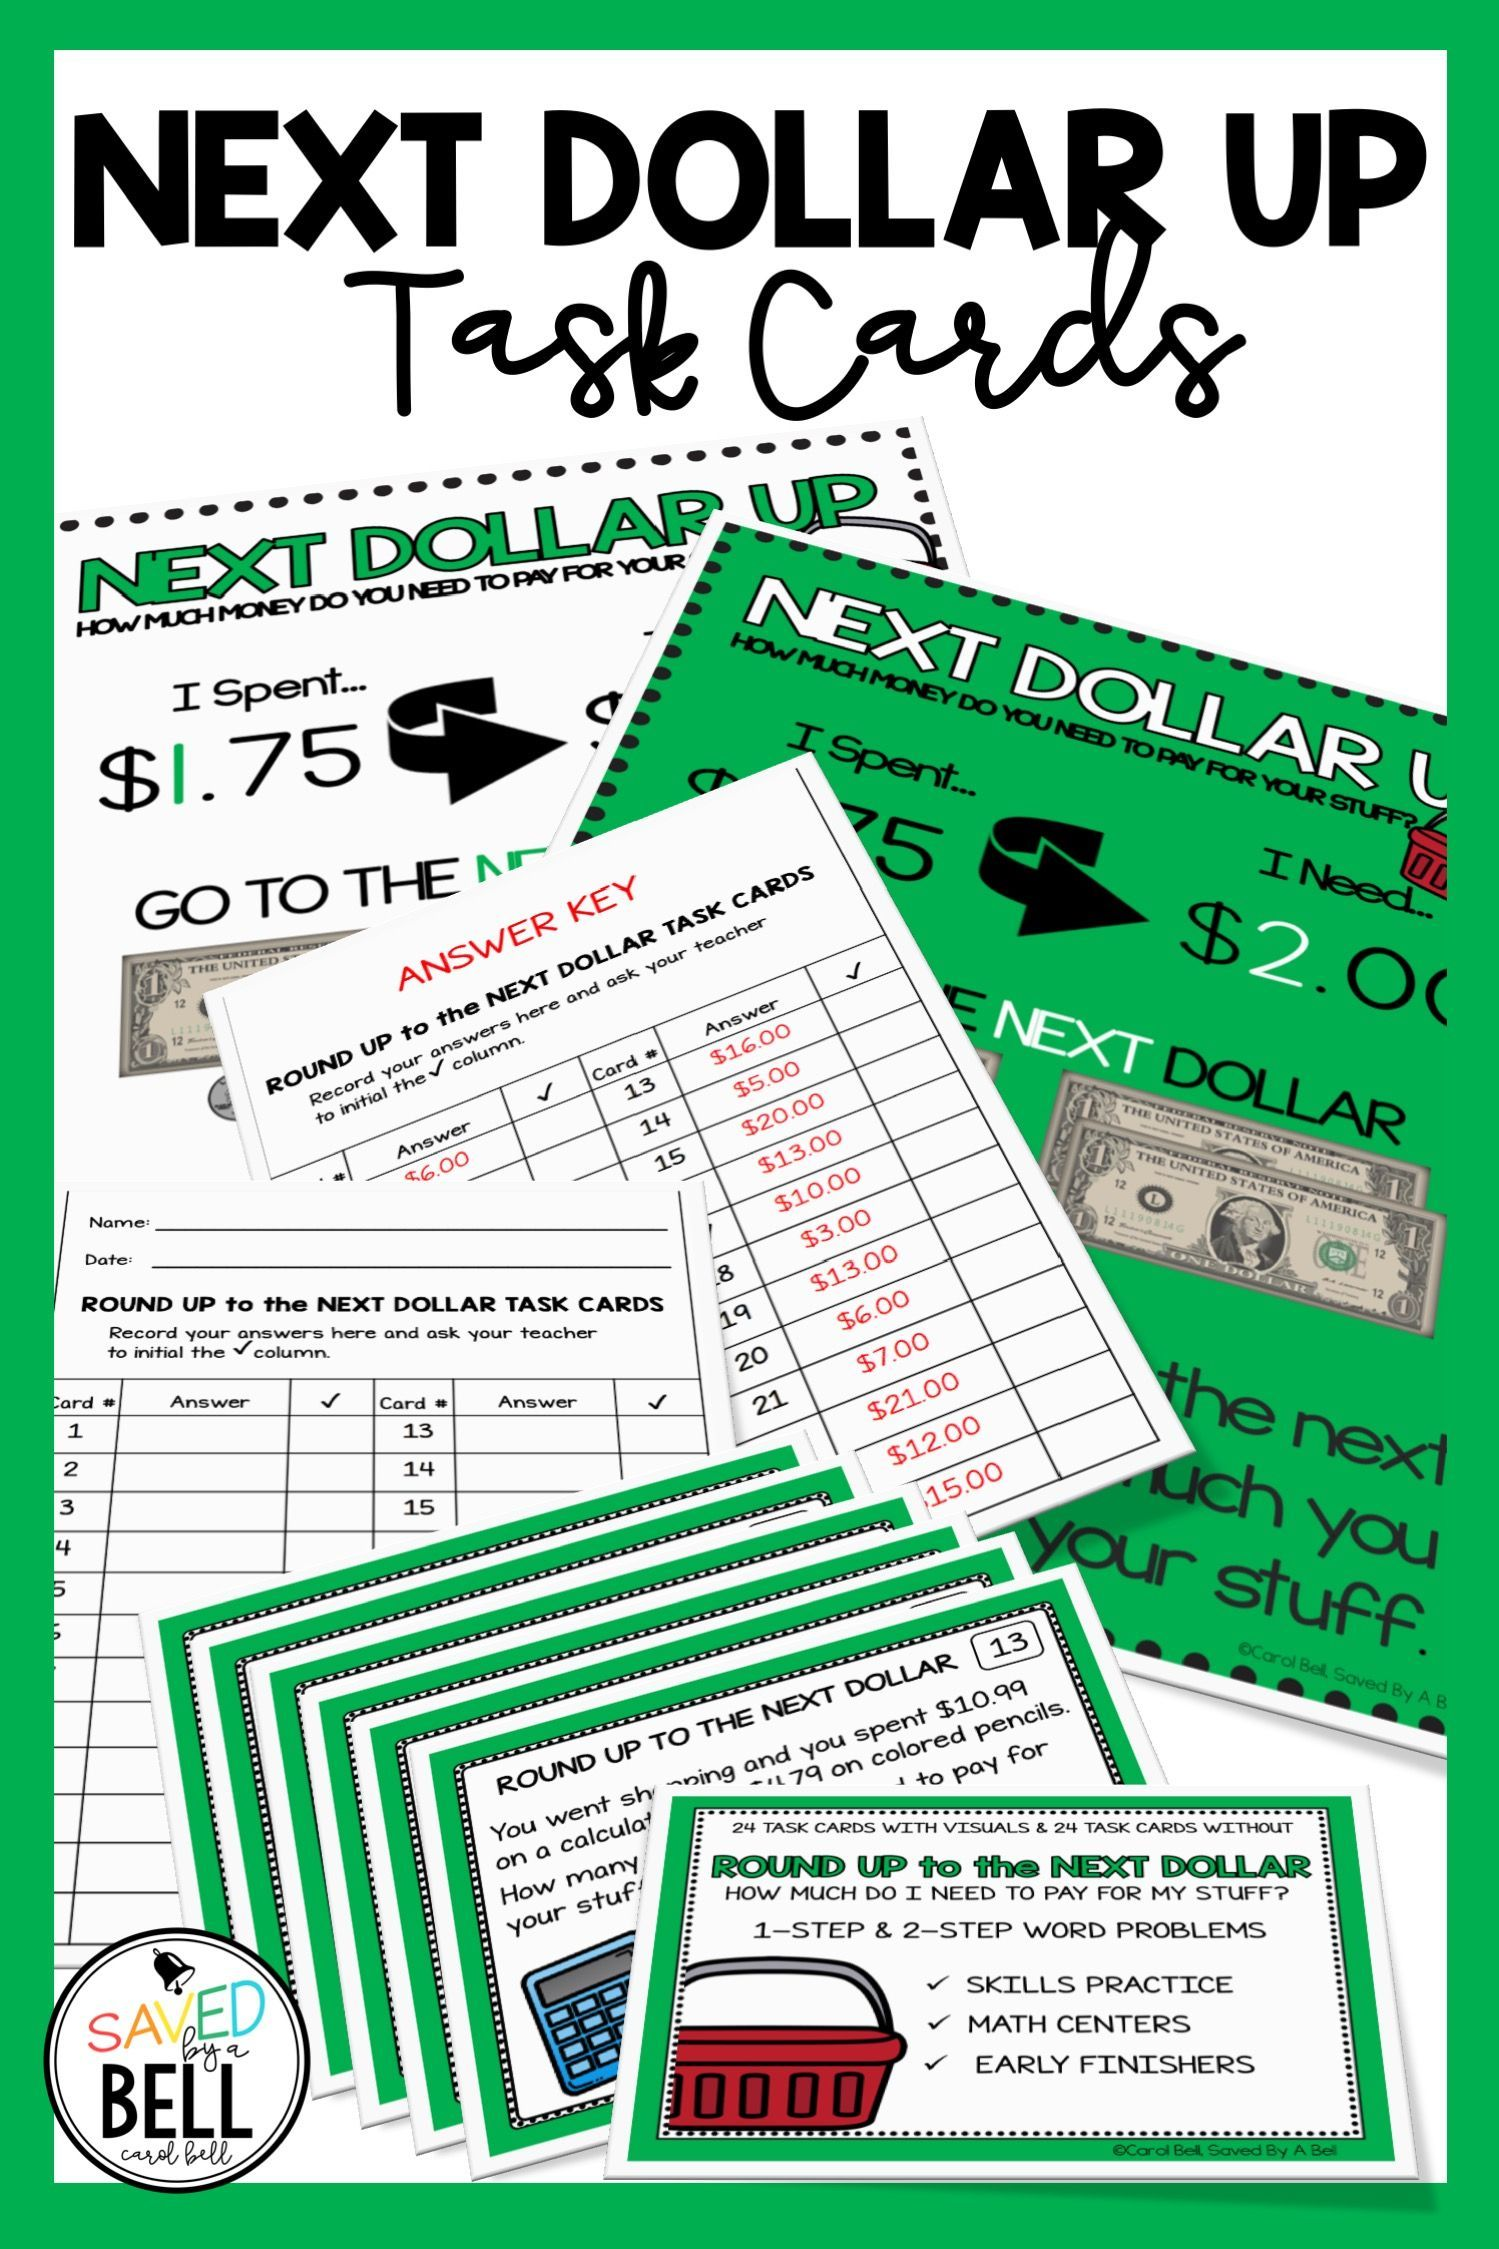 Next Dollar Up Task Cards